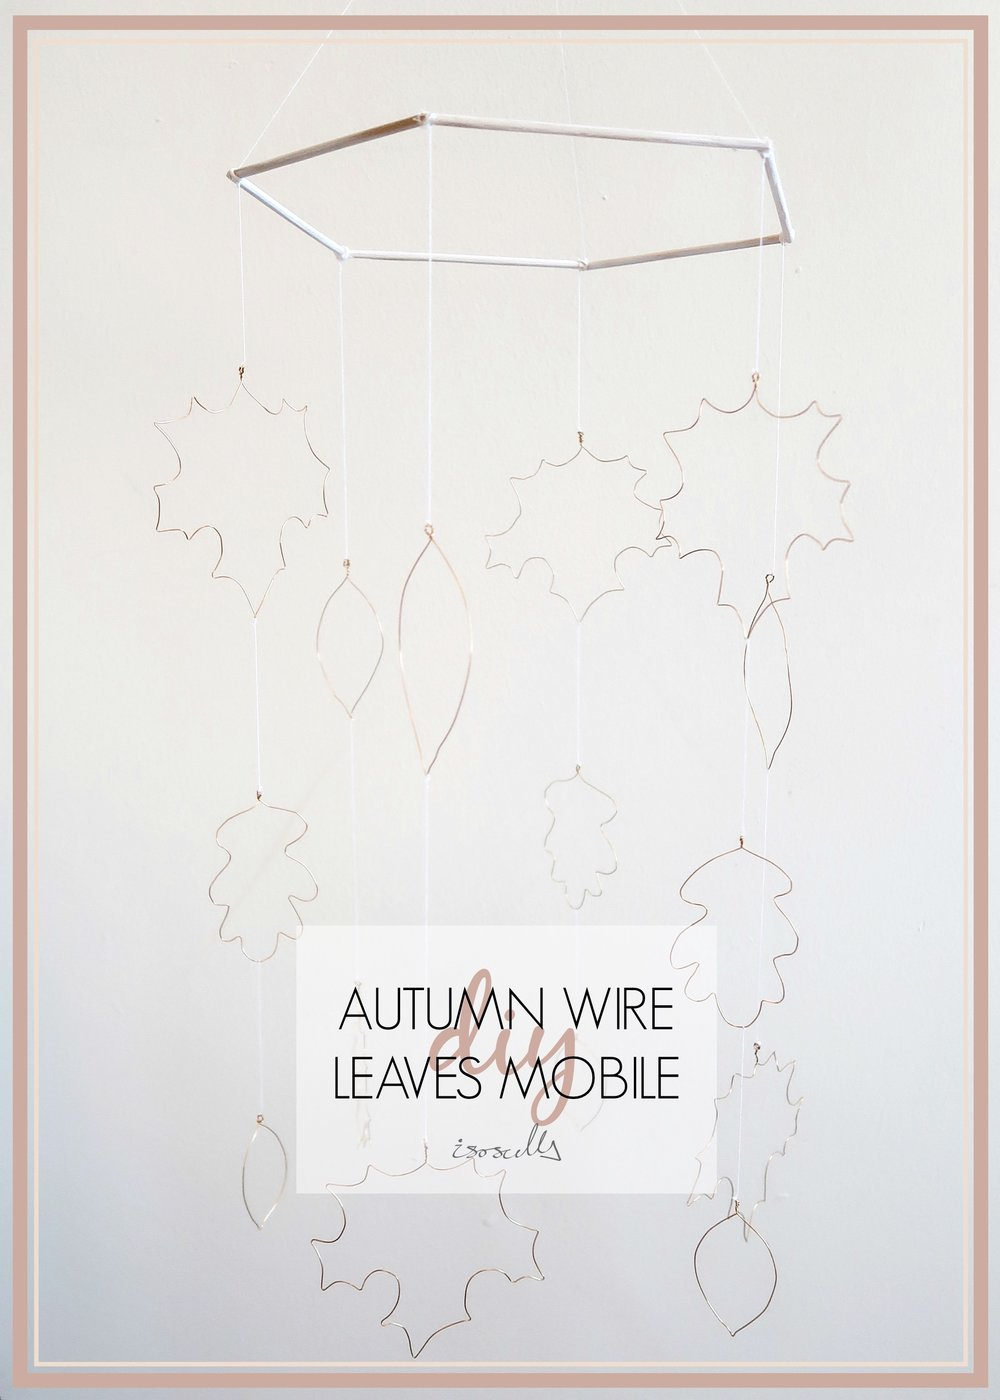 DIY Autumn Wire Leaves Mobile by Isoscella